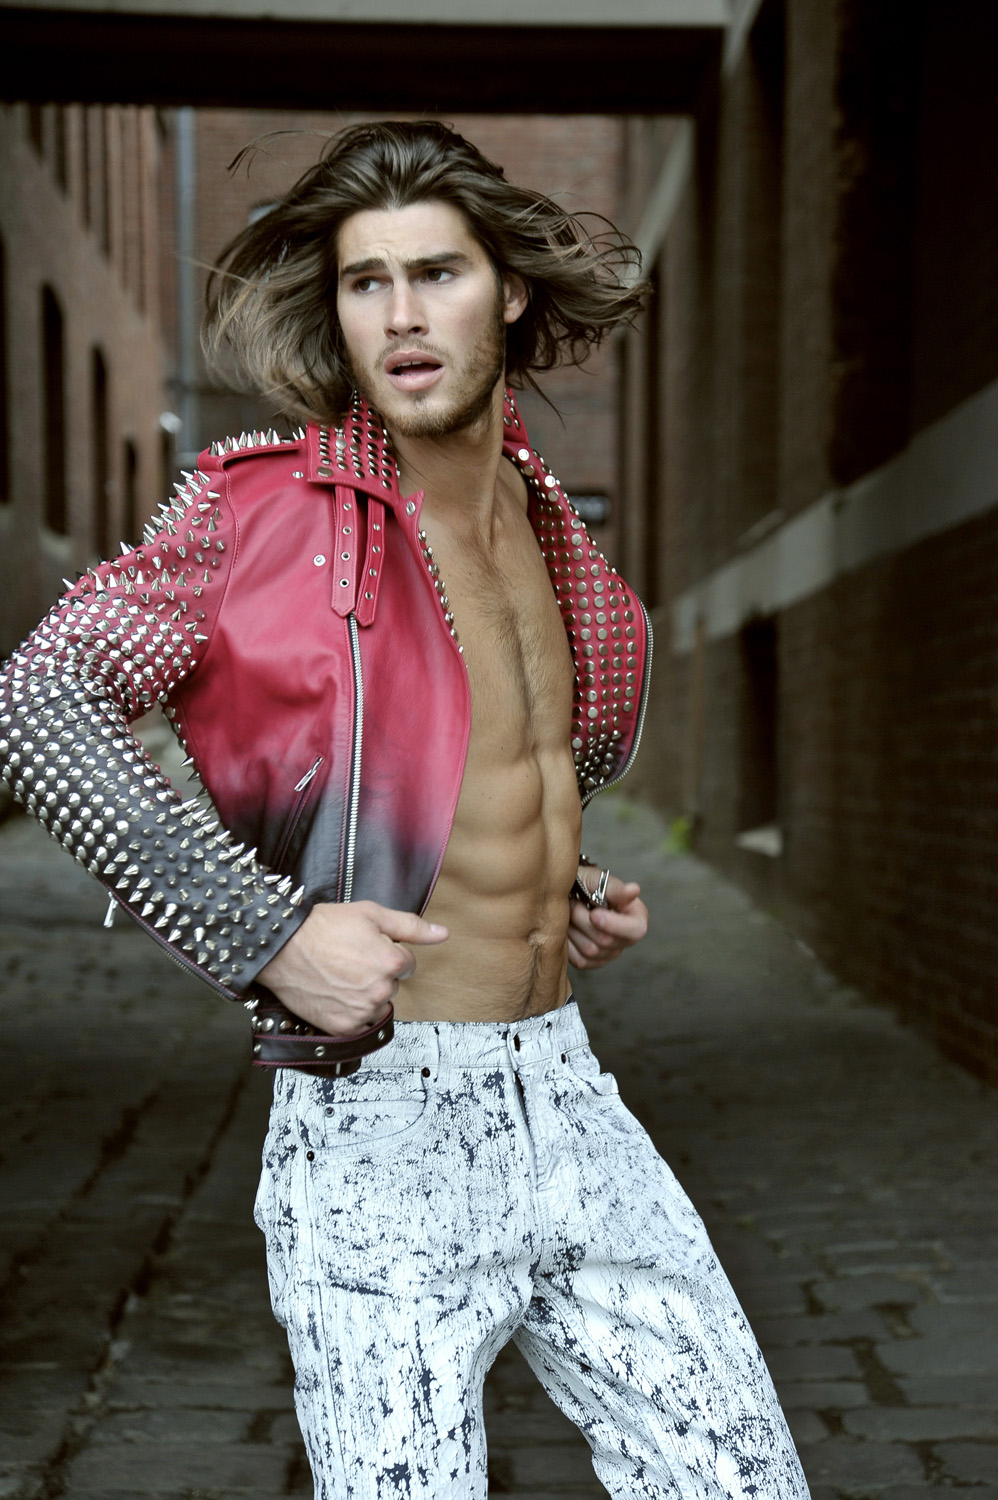 MELBOURNE ROCKSTAR Model Justin Lacko wears new Oscar Calvo Leather Studded Jacket and jeans from Alexander McQueen, photographed by Johnny Vision, styled by Melissa Nixon. You can pre-order this stunning jacket at www.oscarcalvo.com.au